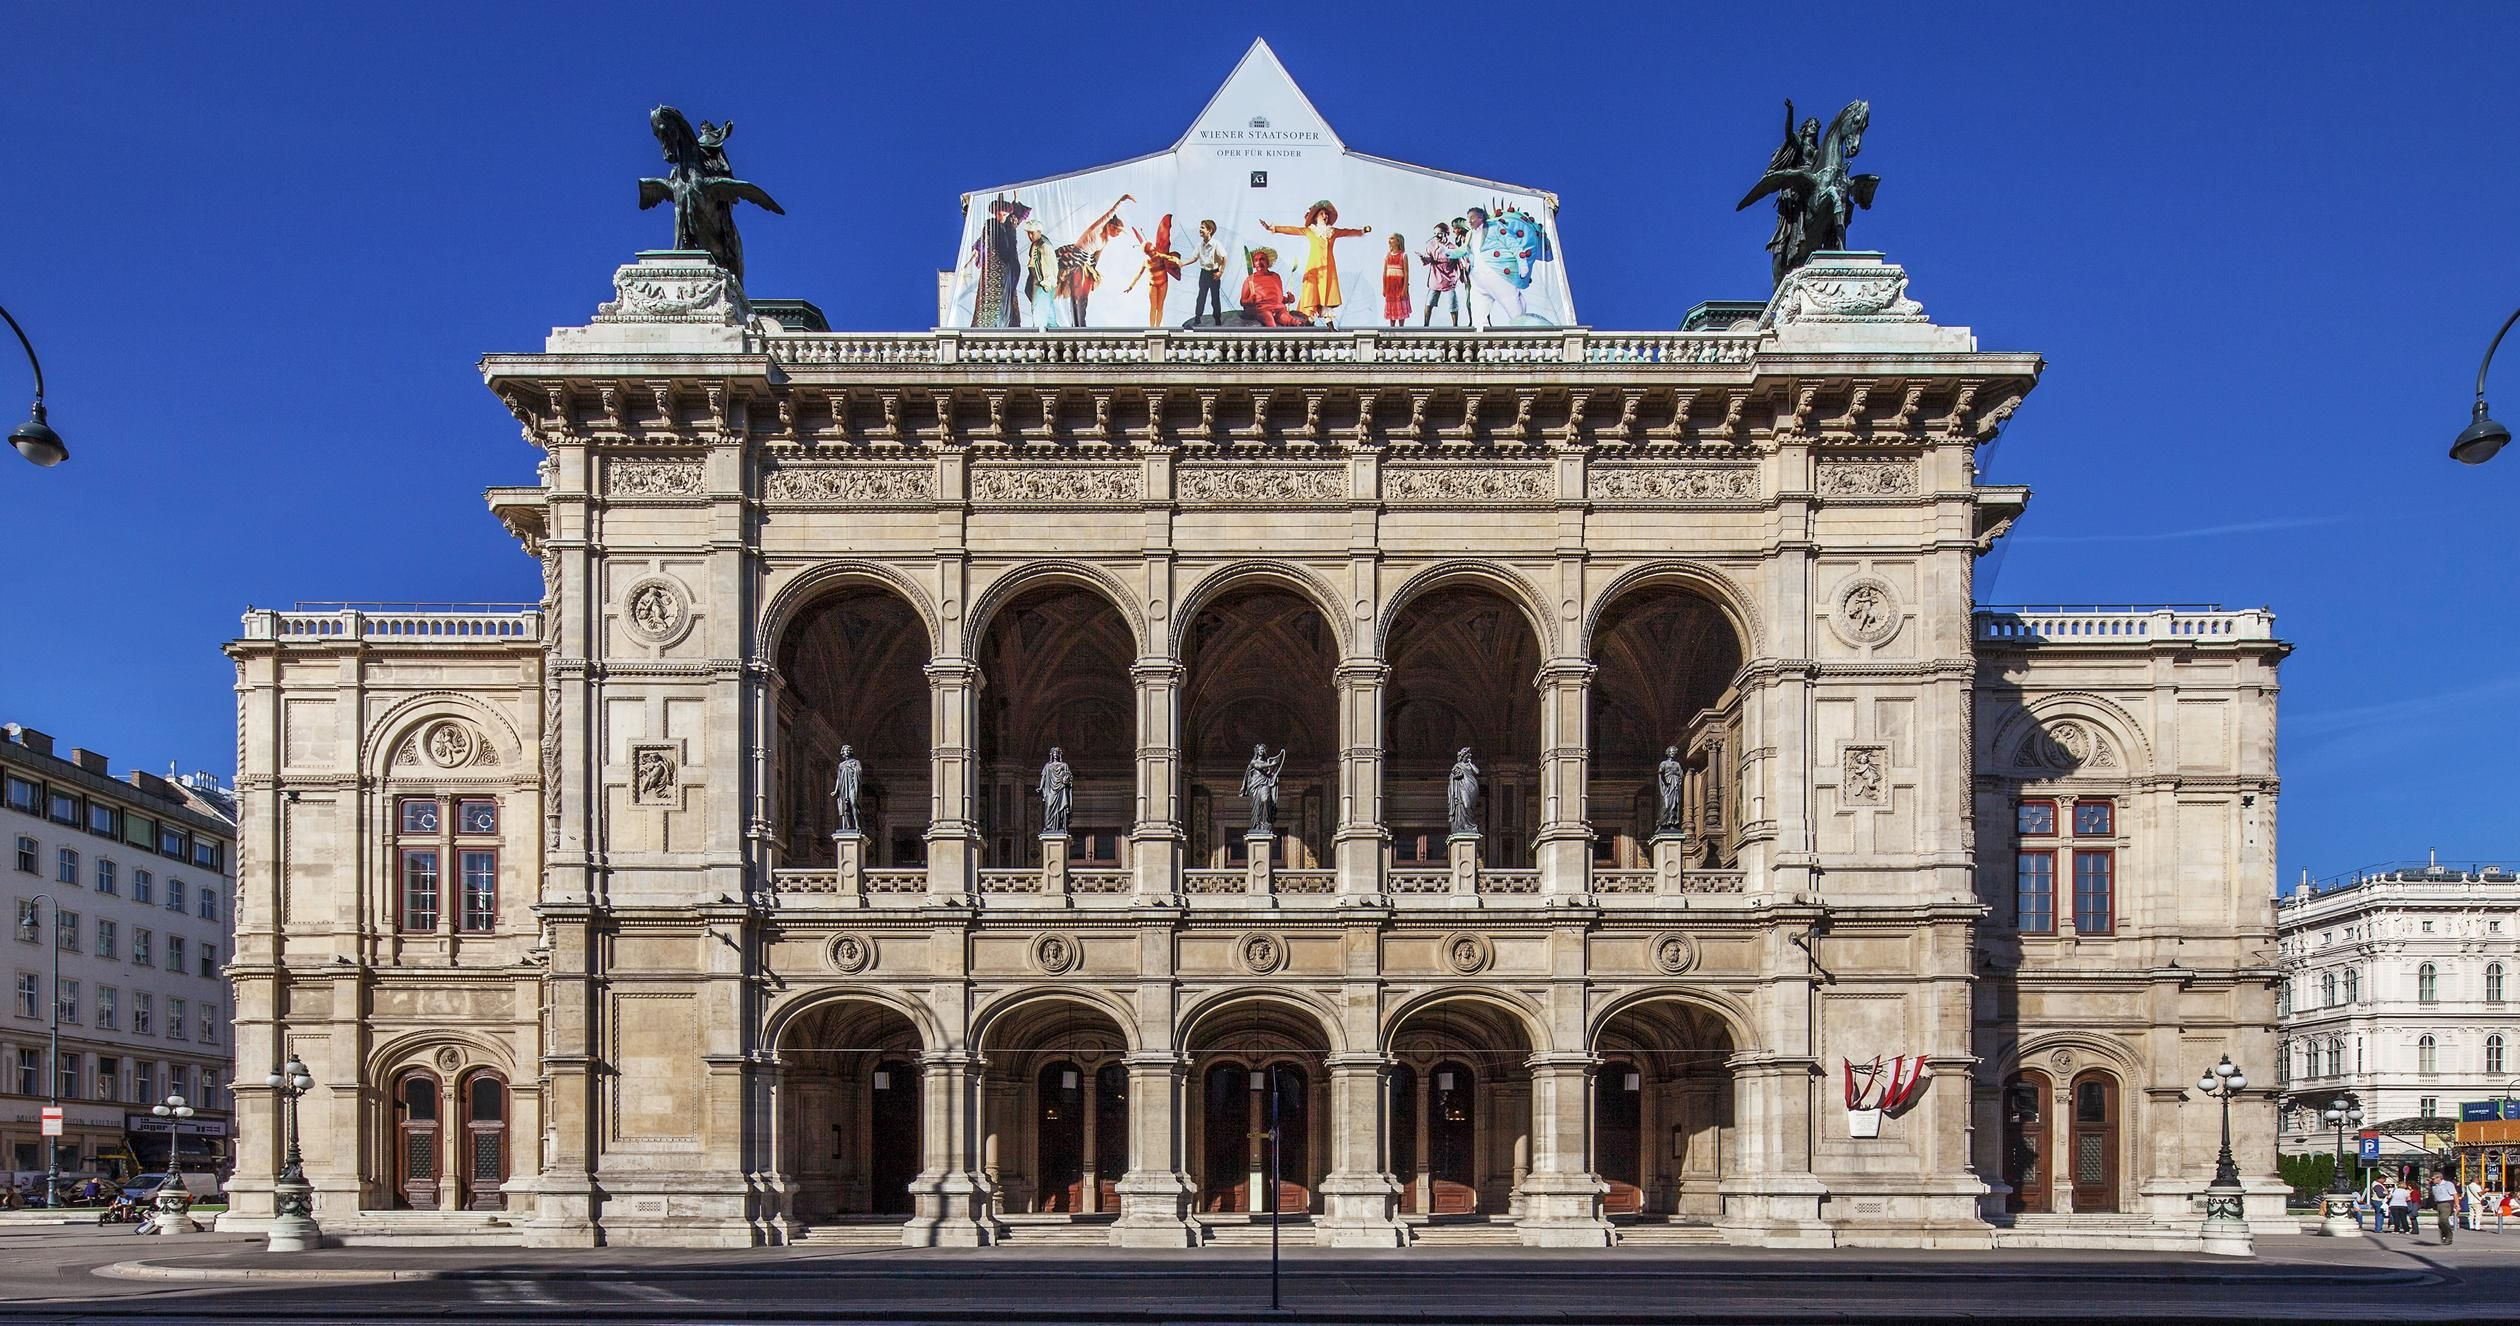 The Vienna State Opera Is One Of The Top Opera Addresses In The